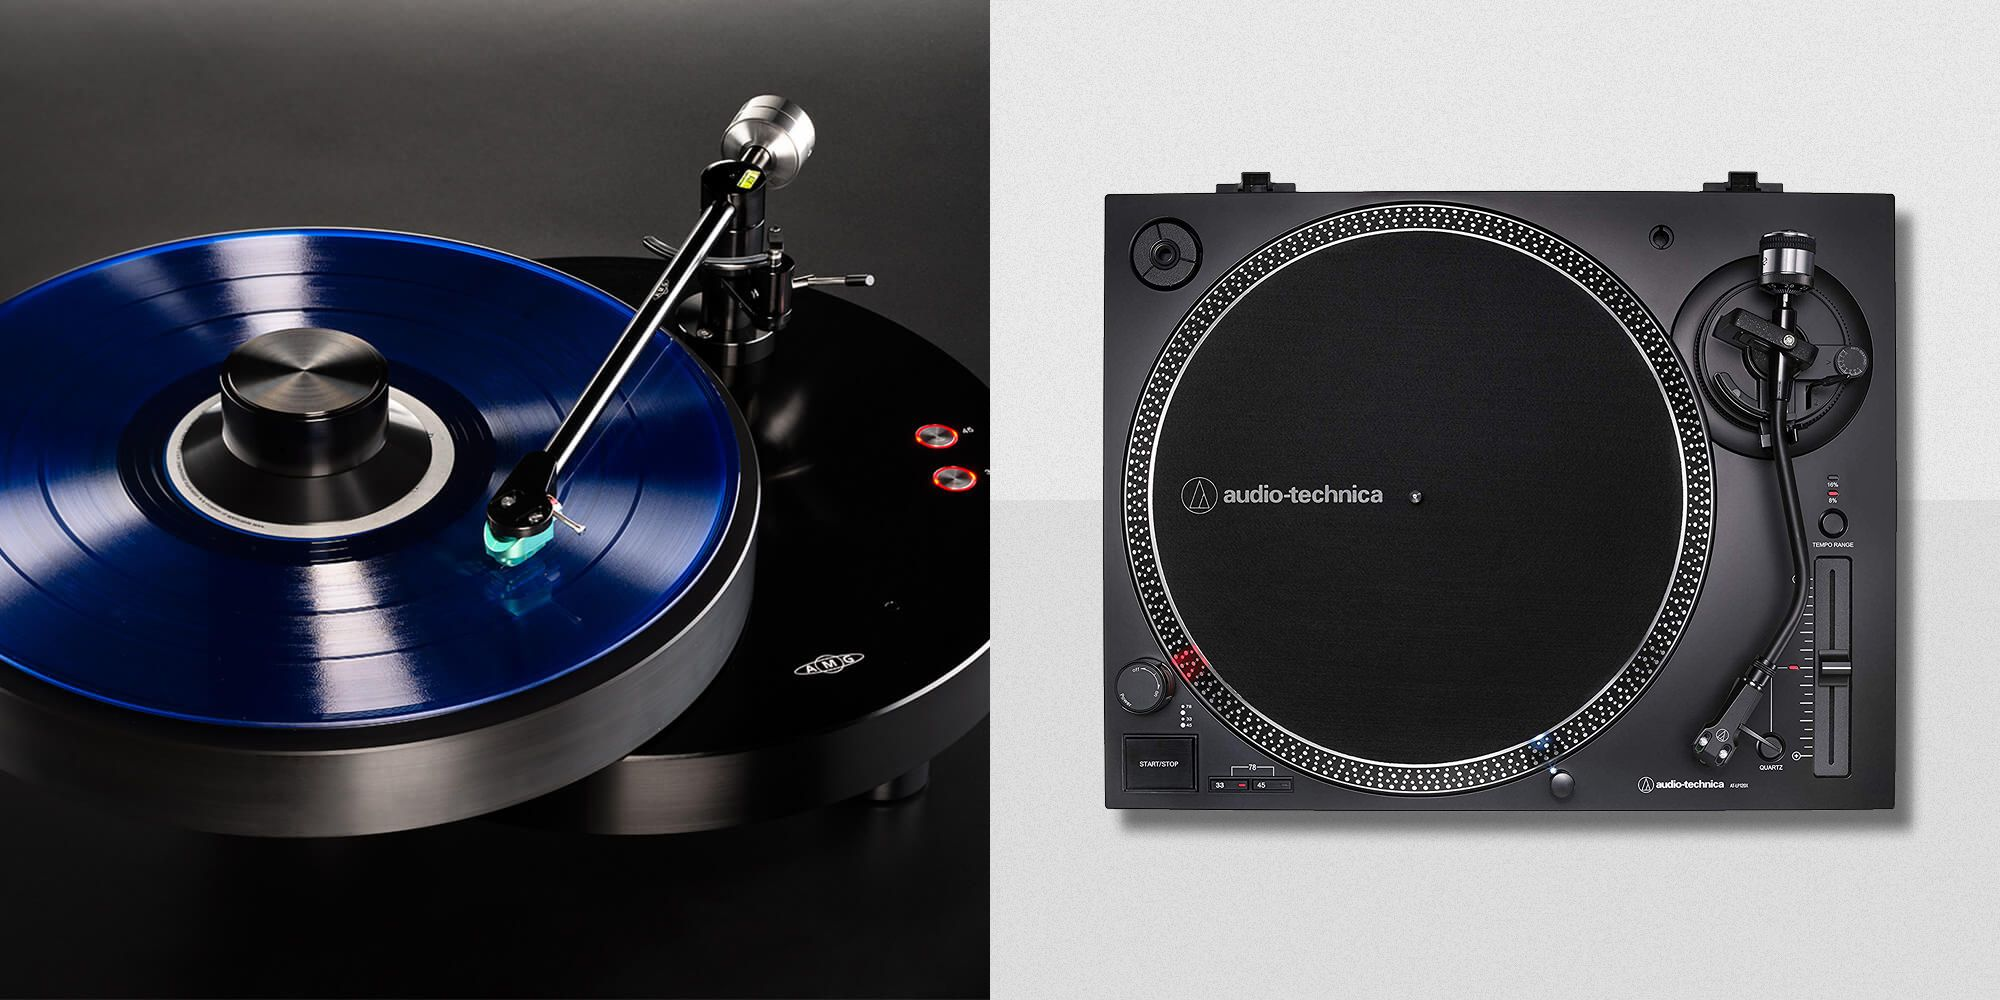 The Best Turntables at Any Price You Can Buy Right Now